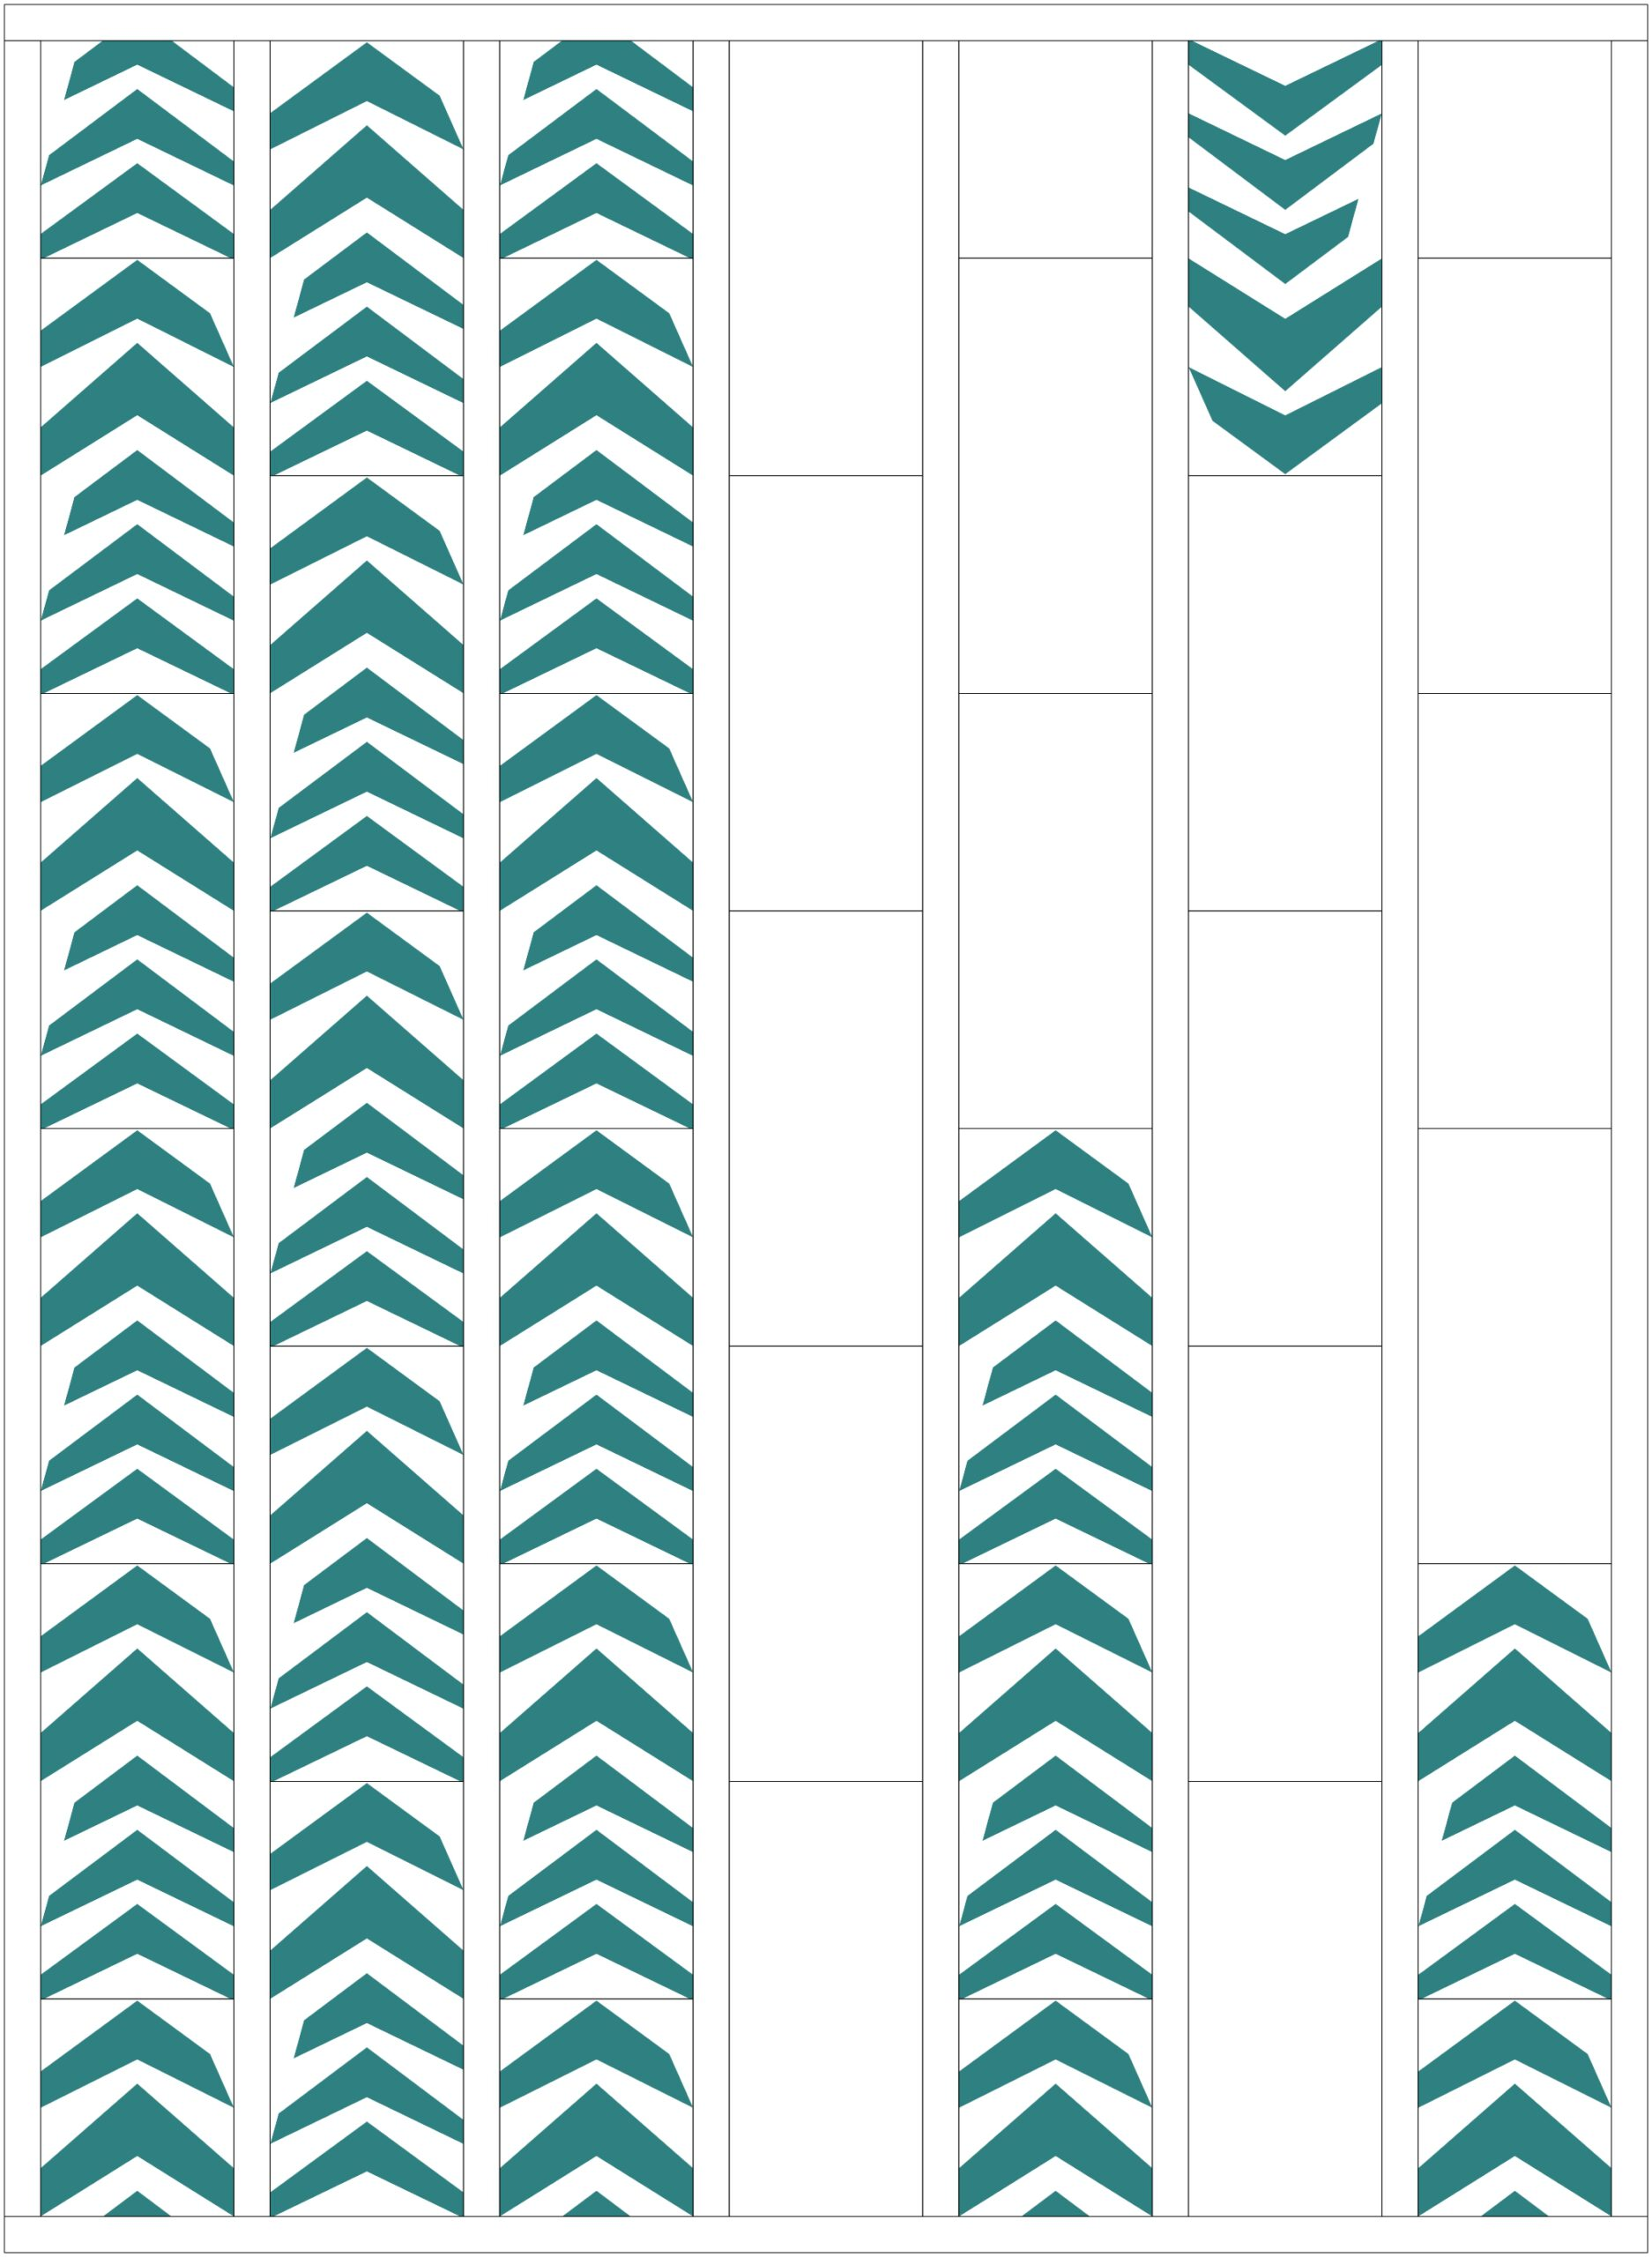 Wonky Chevrons - Alternate Layout Option 2 | mellmeyer.de